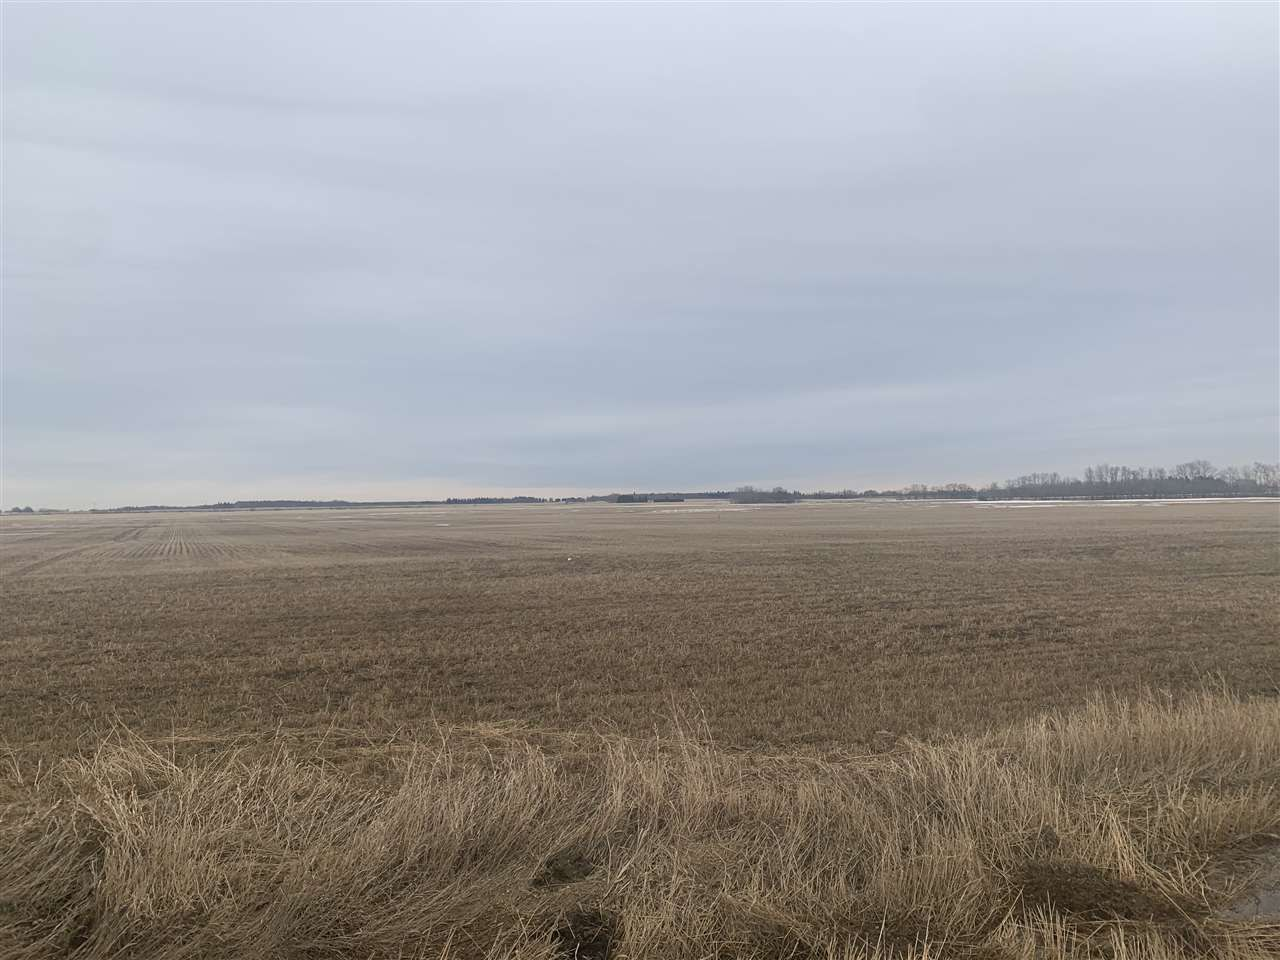 Main Photo: Rg. Rd. 252 Twp. 564: Rural Sturgeon County Rural Land/Vacant Lot for sale : MLS®# E4235323